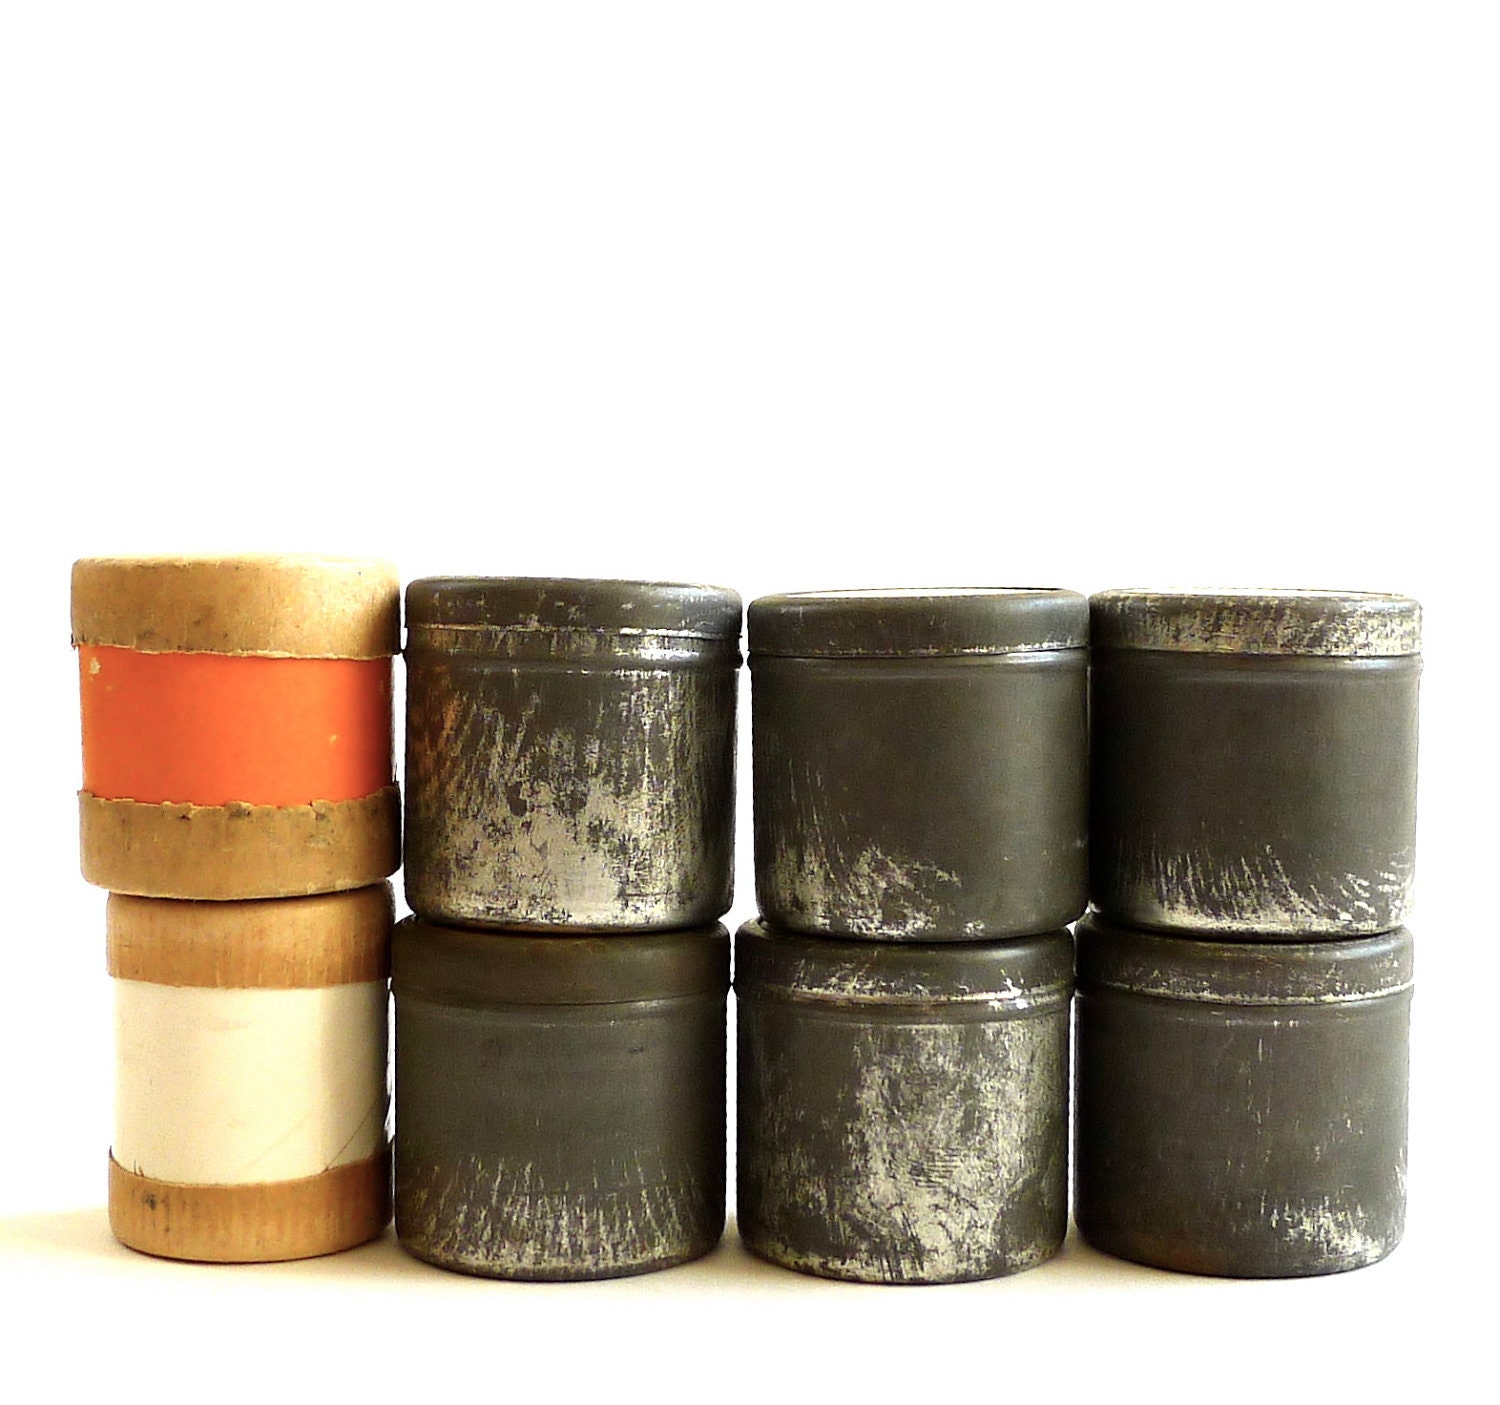 Vintage Film Canisters - marybethhale